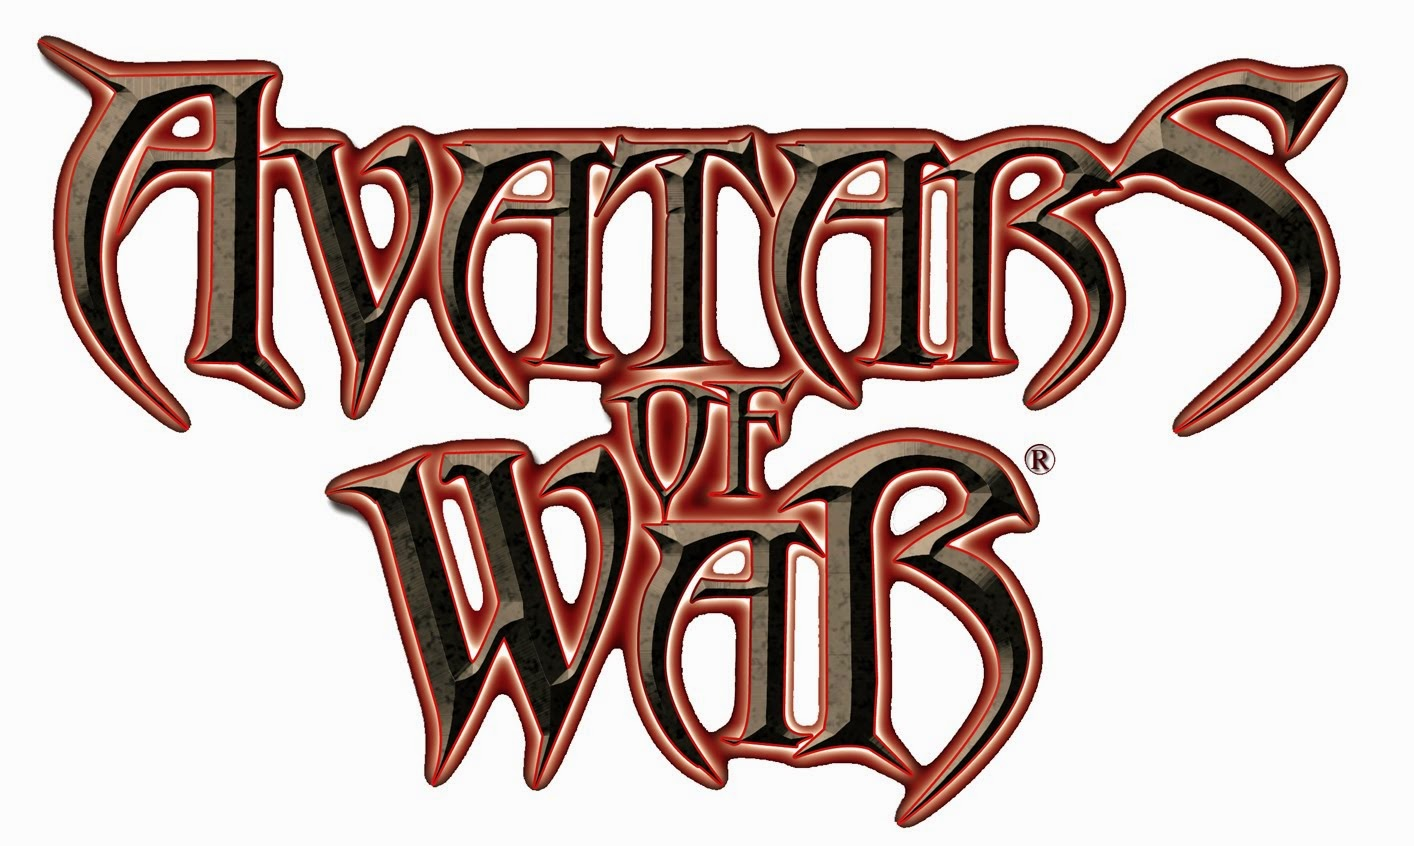 Sponsor:Avatars of War